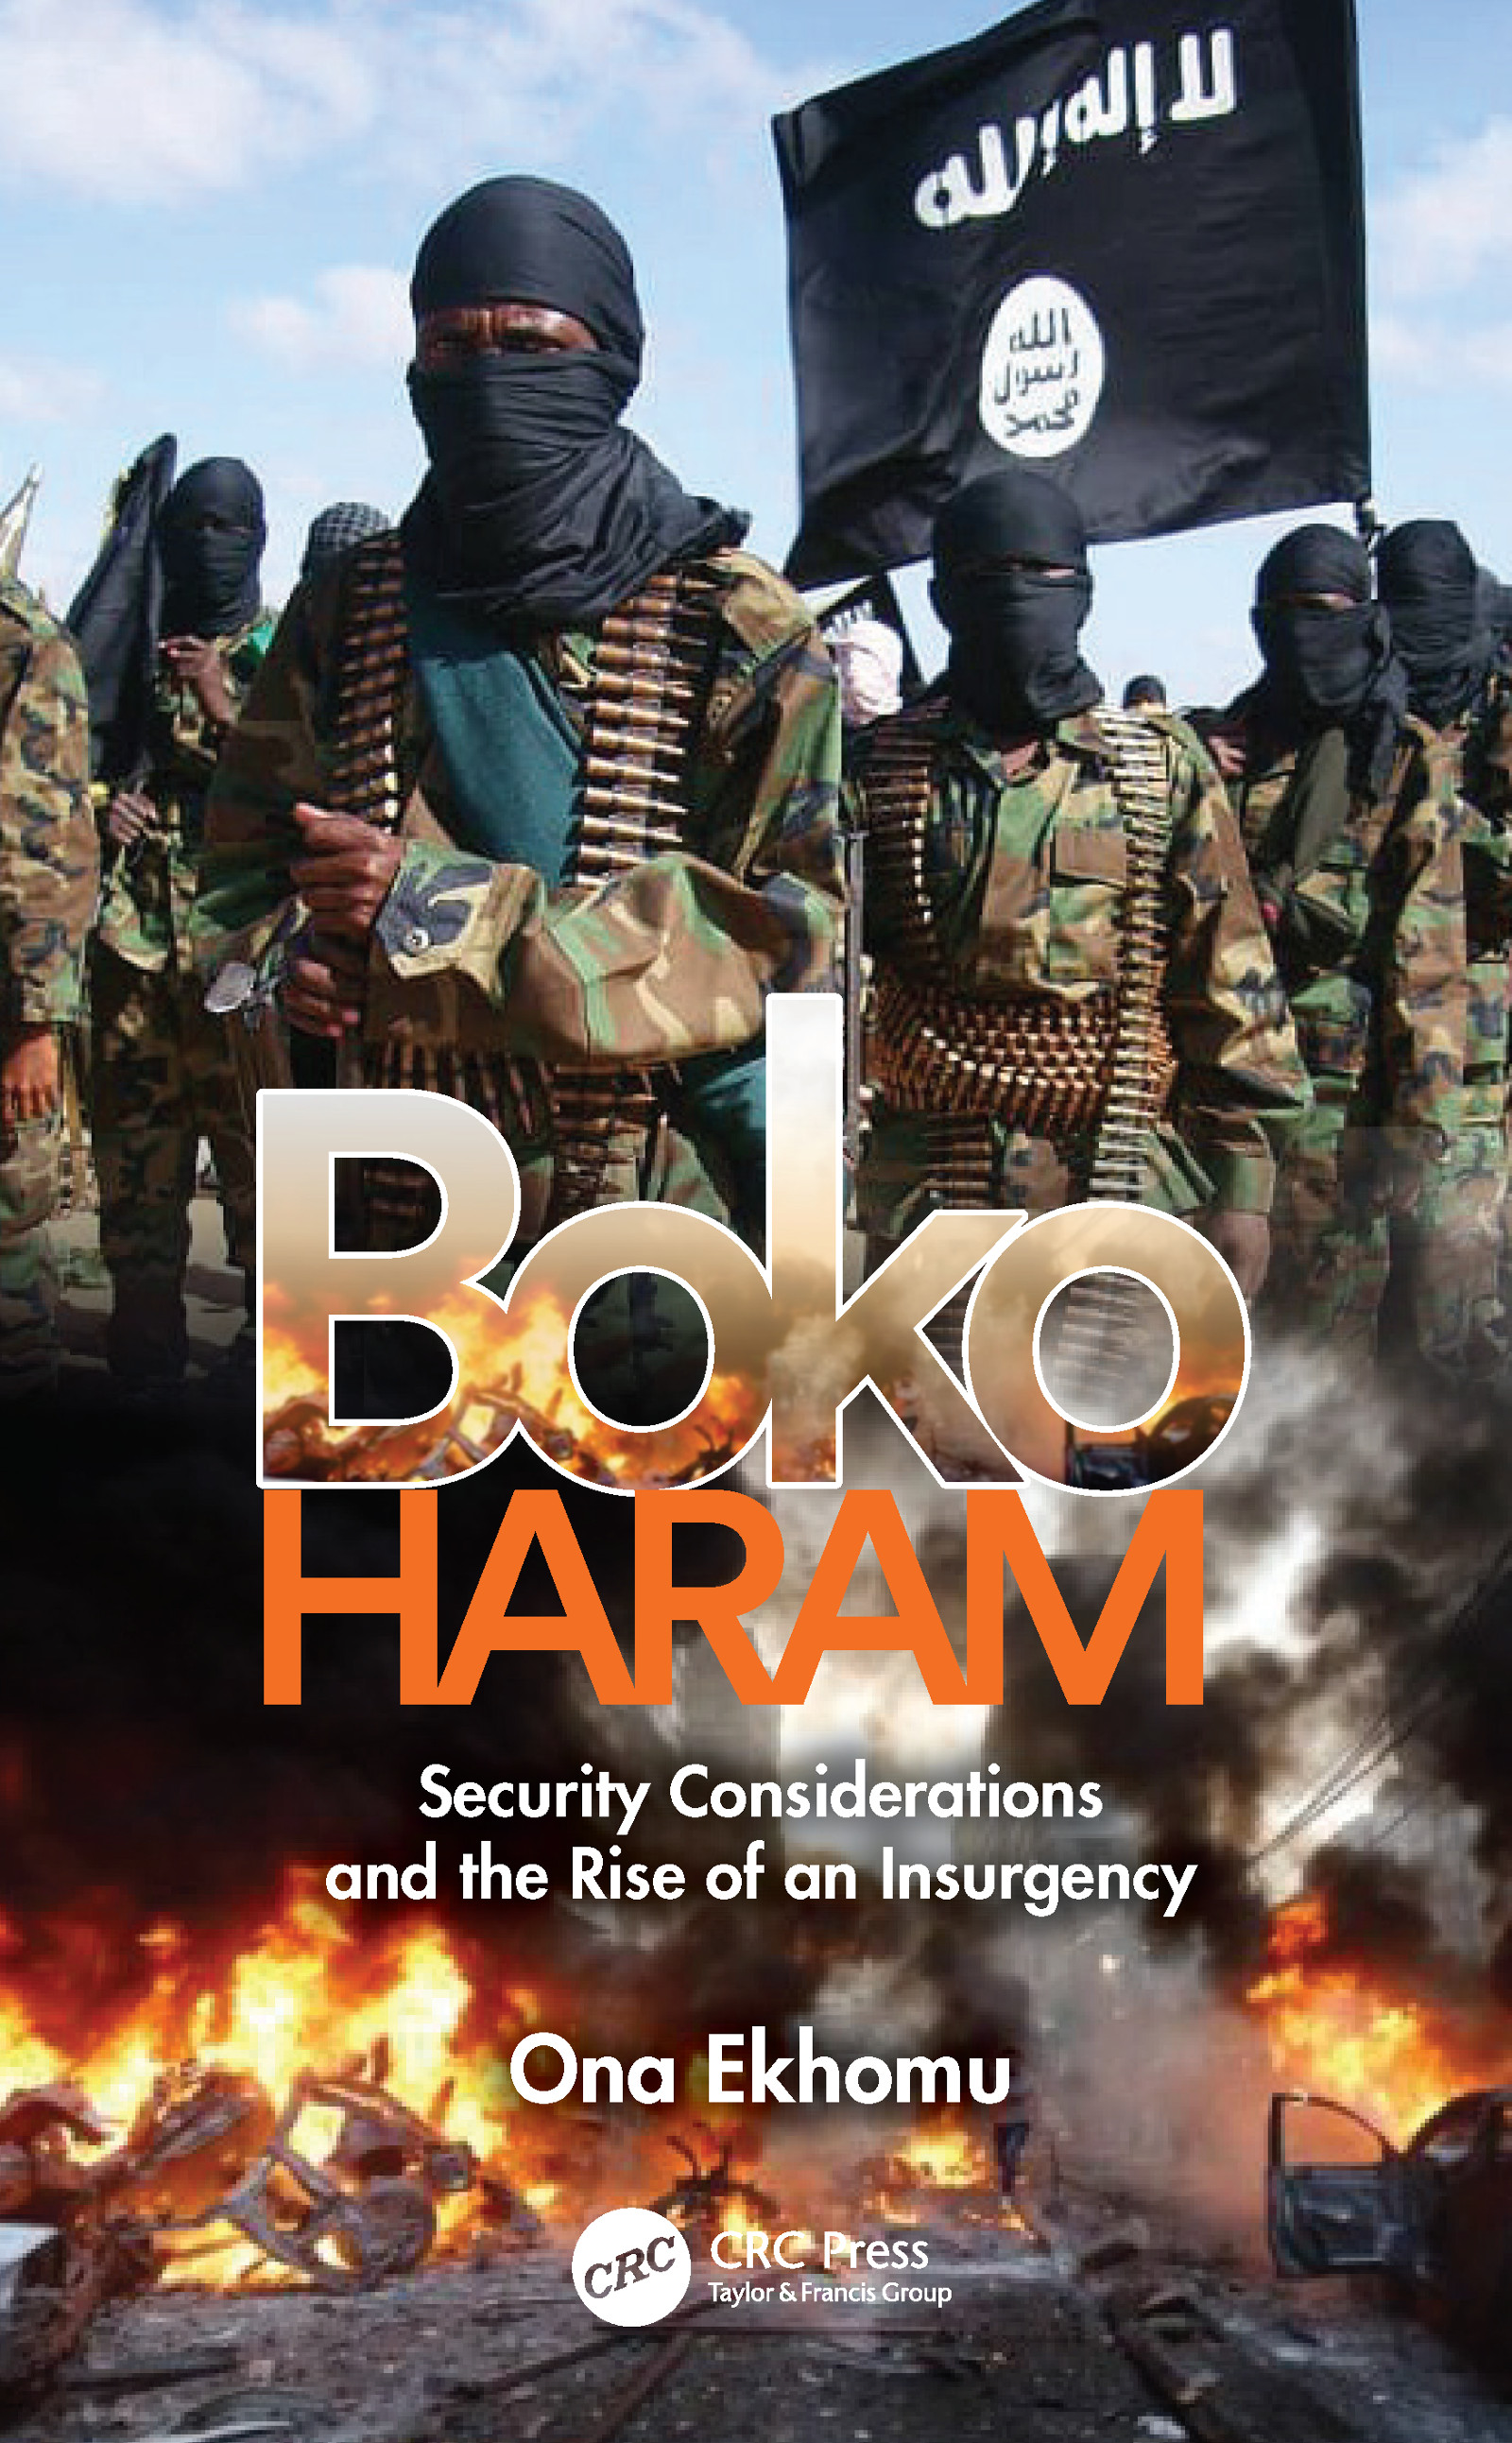 Boko Haram: Security Considerations and the Rise of an Insurgency book cover